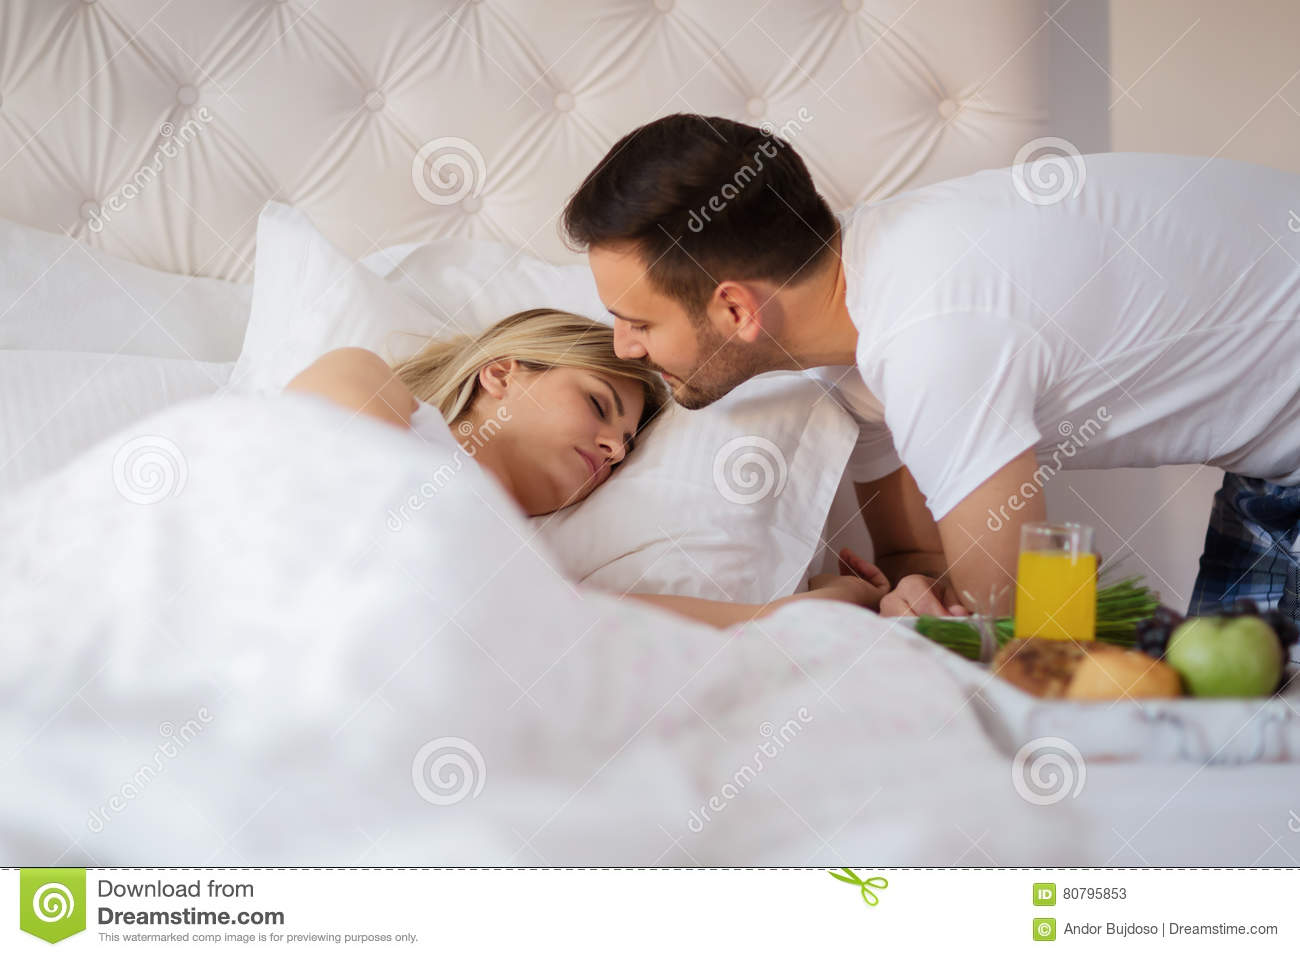 Couple romantic art bed Breakfast in